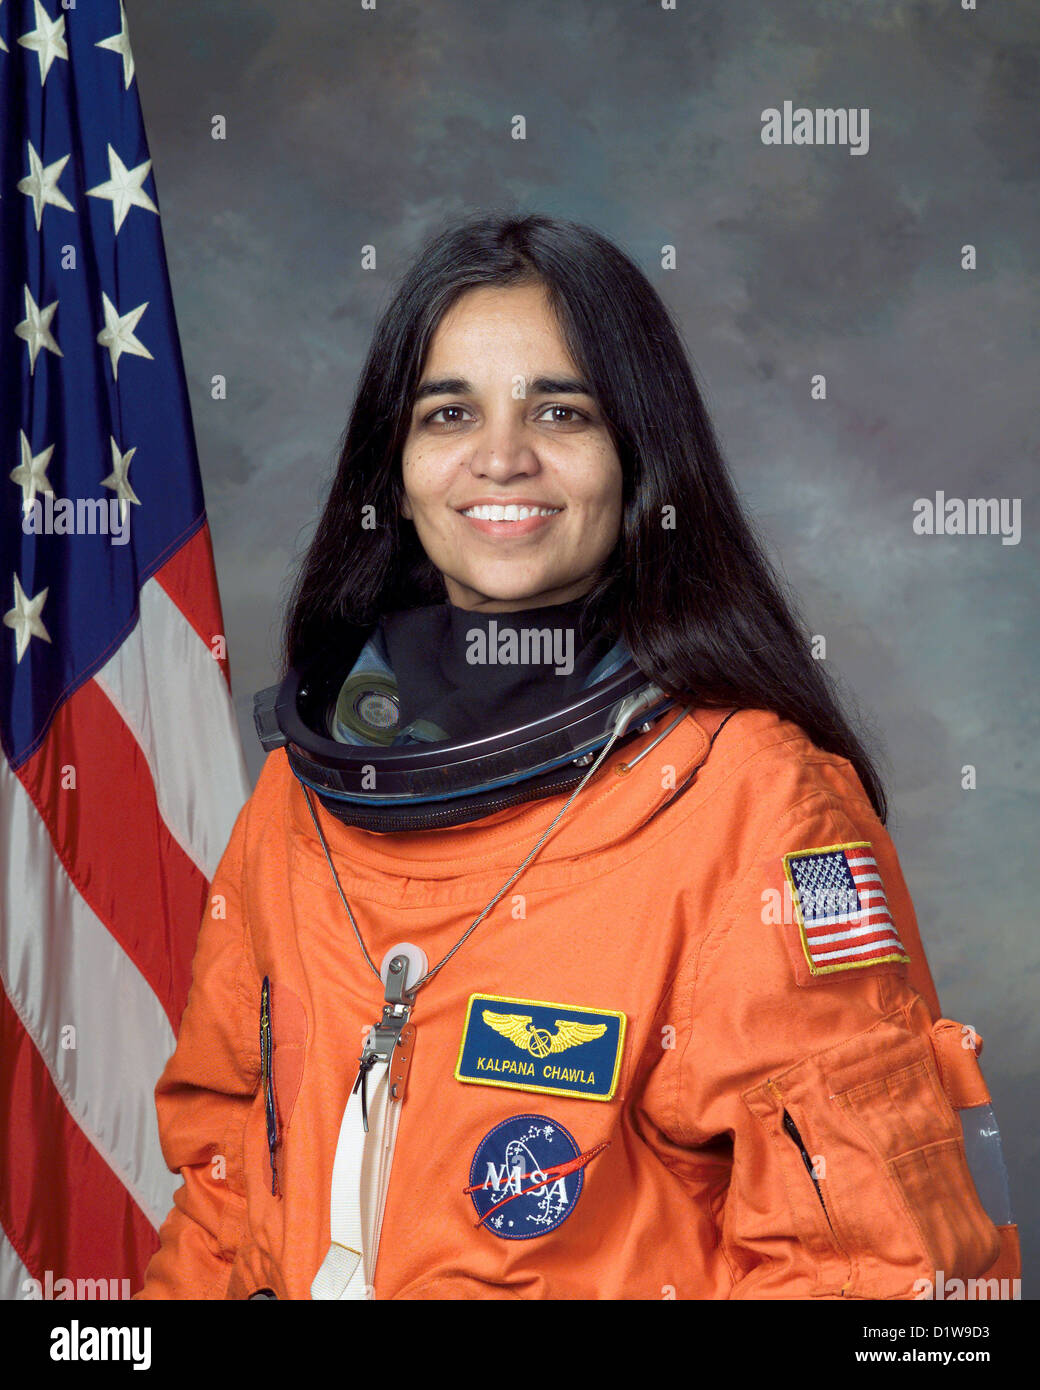 Kalpana Chawla, American astronaut who died during the failed re-entry of Space Shuttle Columbia. - Stock Image